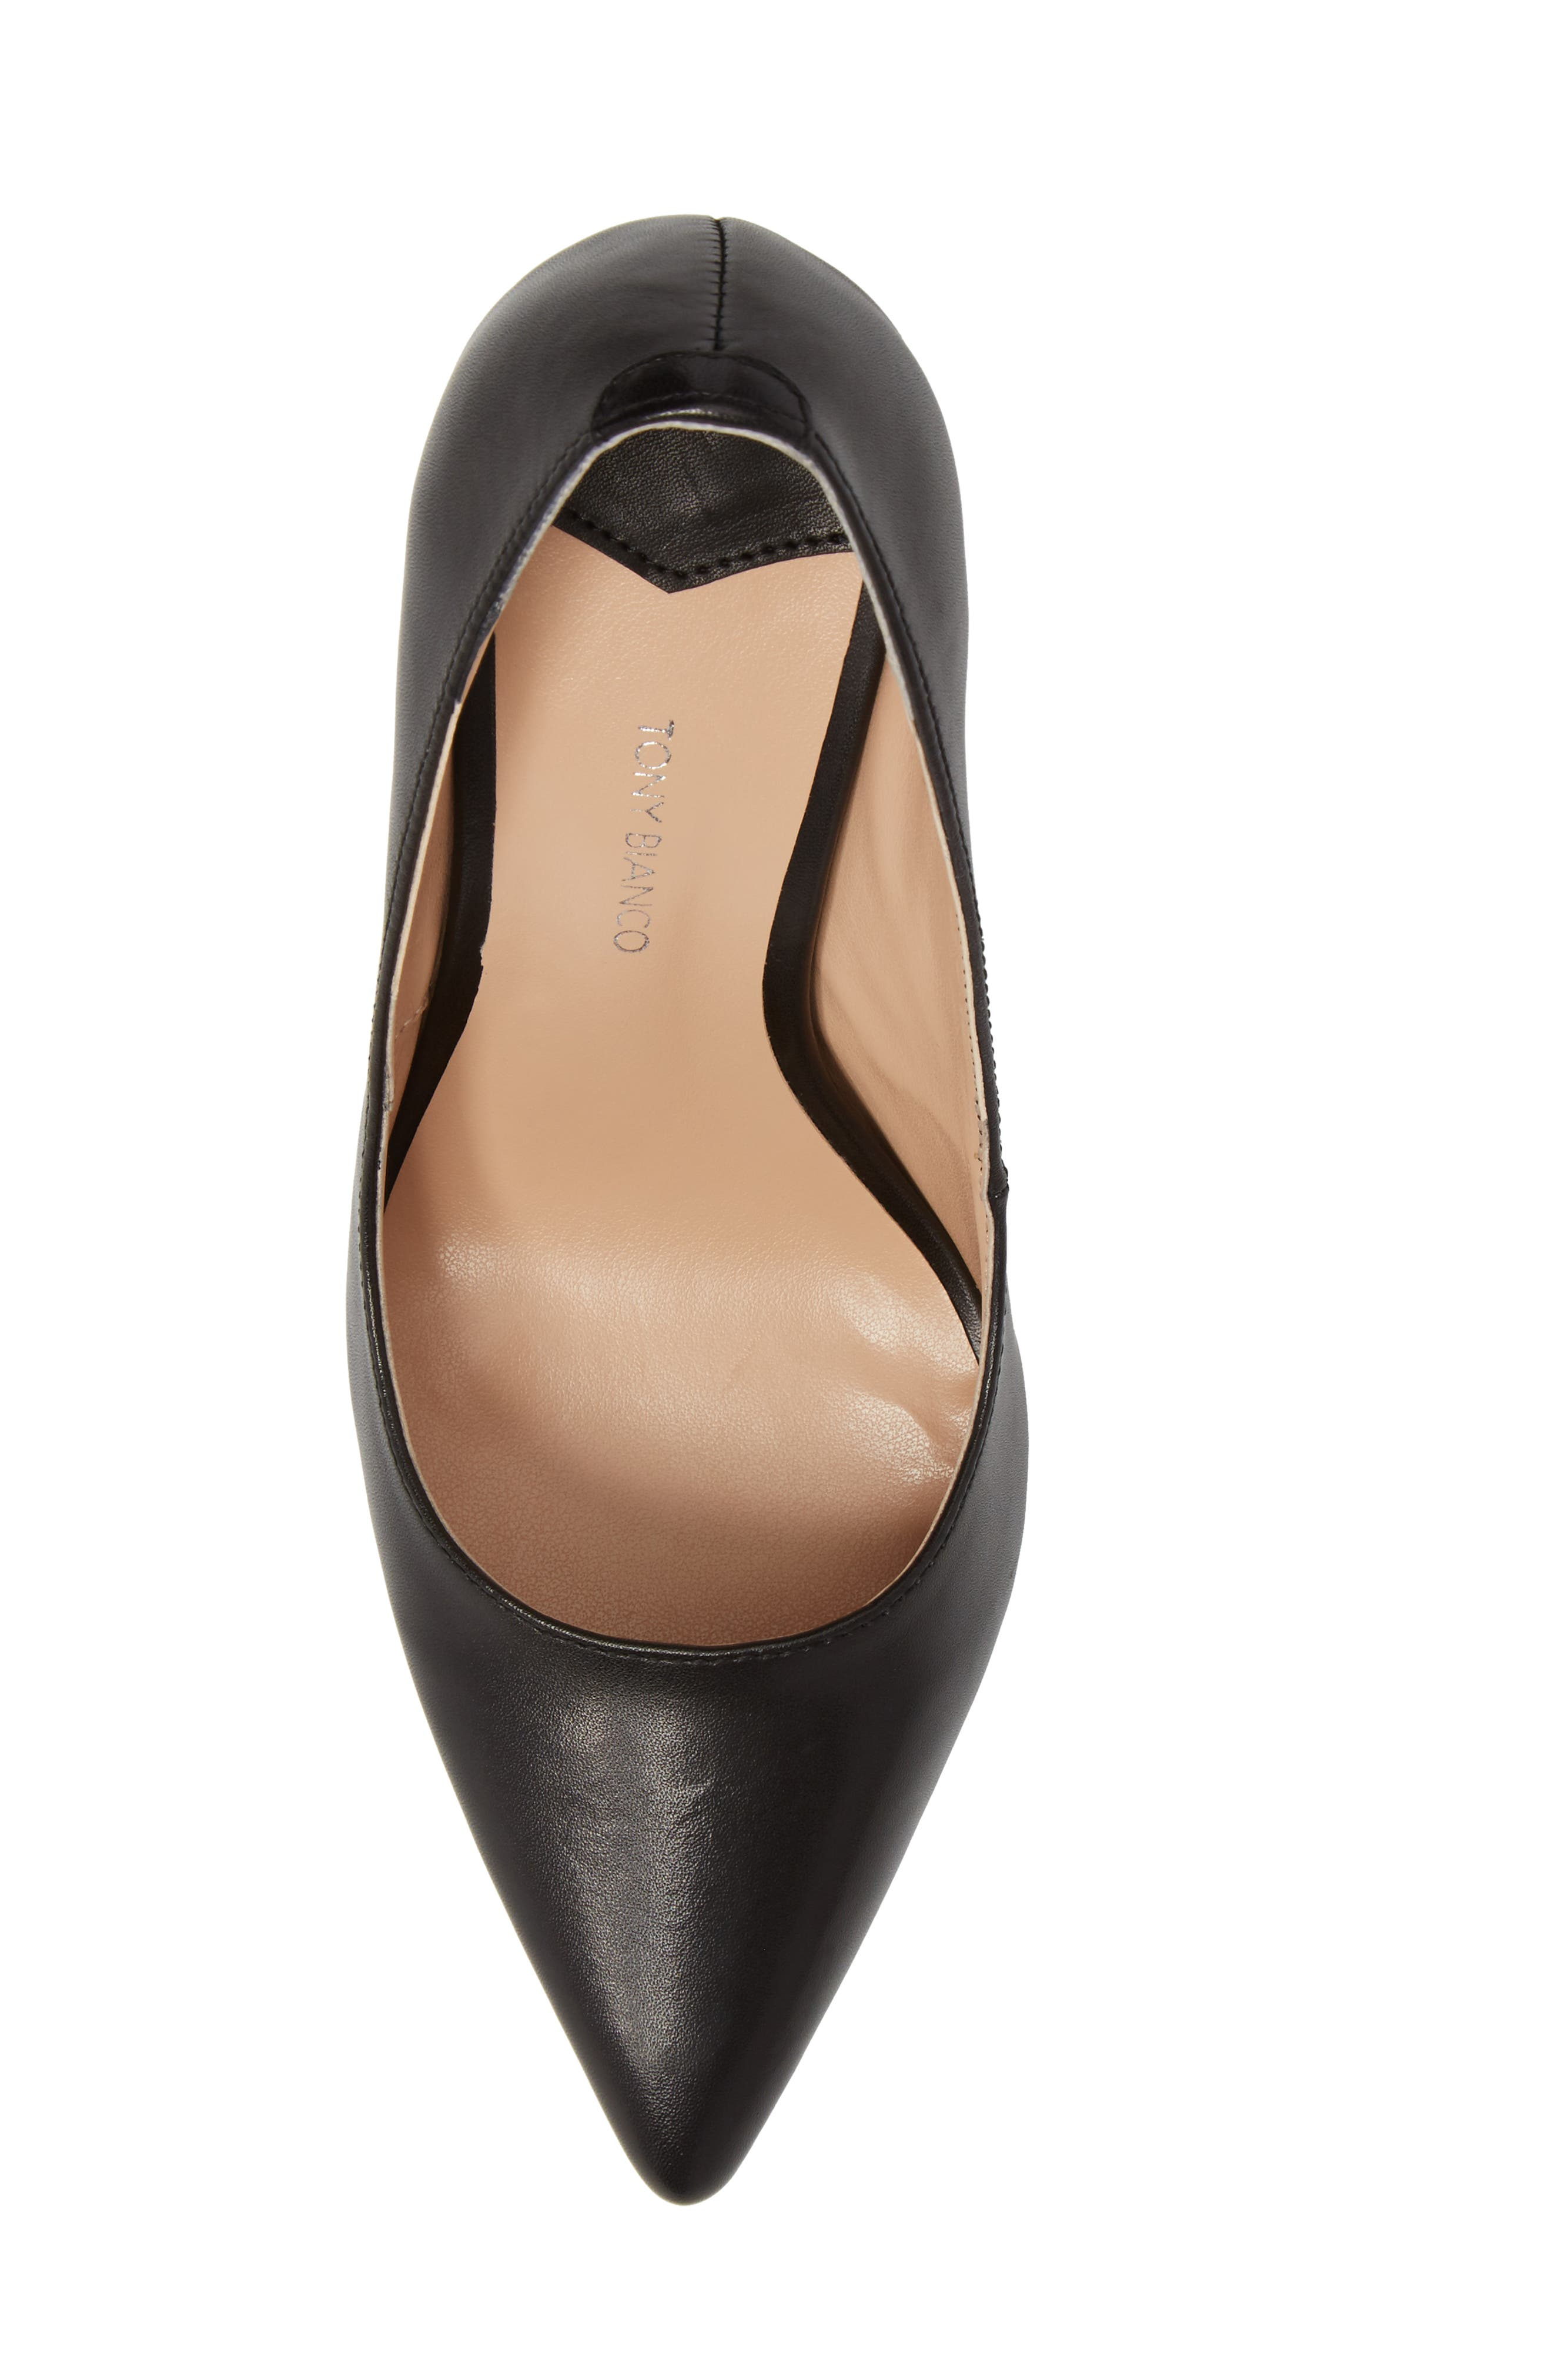 TONY BIANCO, Lotus Pointy Toe Pump, Alternate thumbnail 5, color, 001